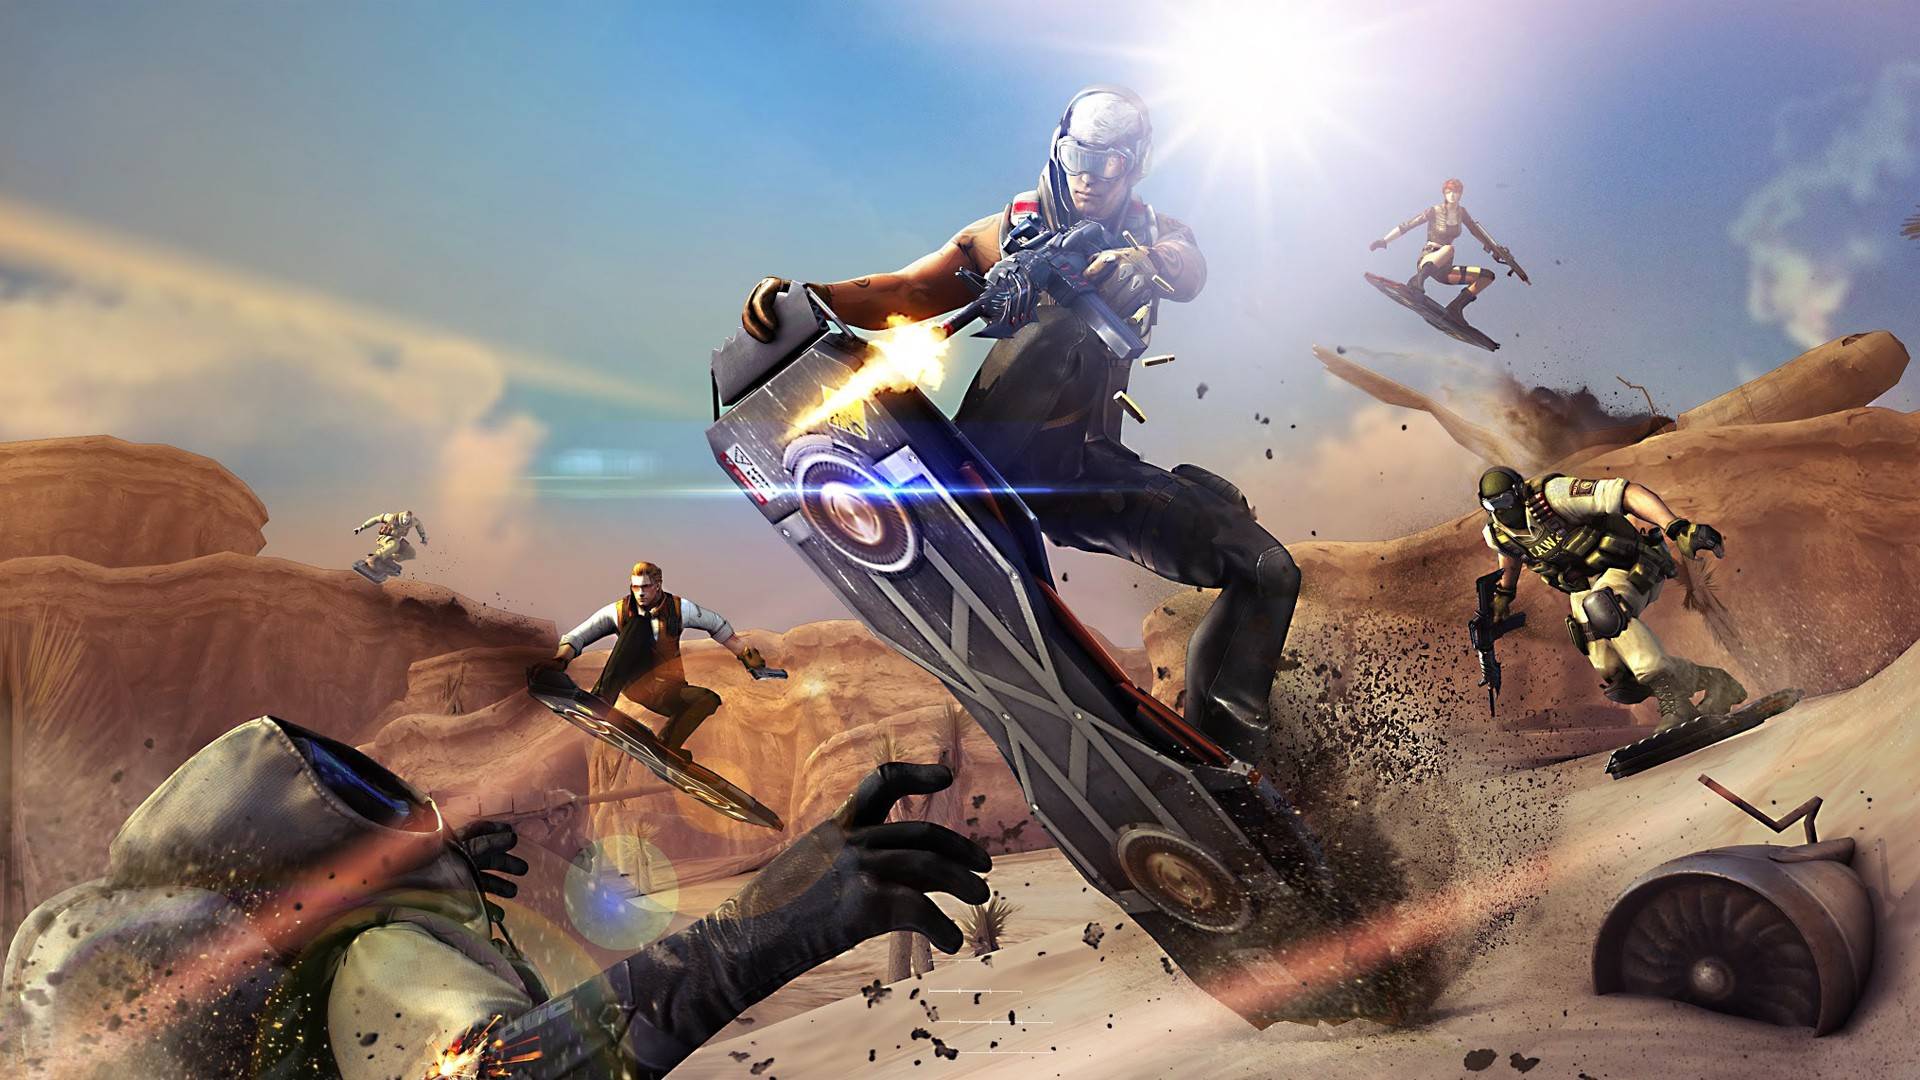 Cool 3d Wallpapers For Walls Crossfire Death Rally Hd Games 4k Wallpapers Images